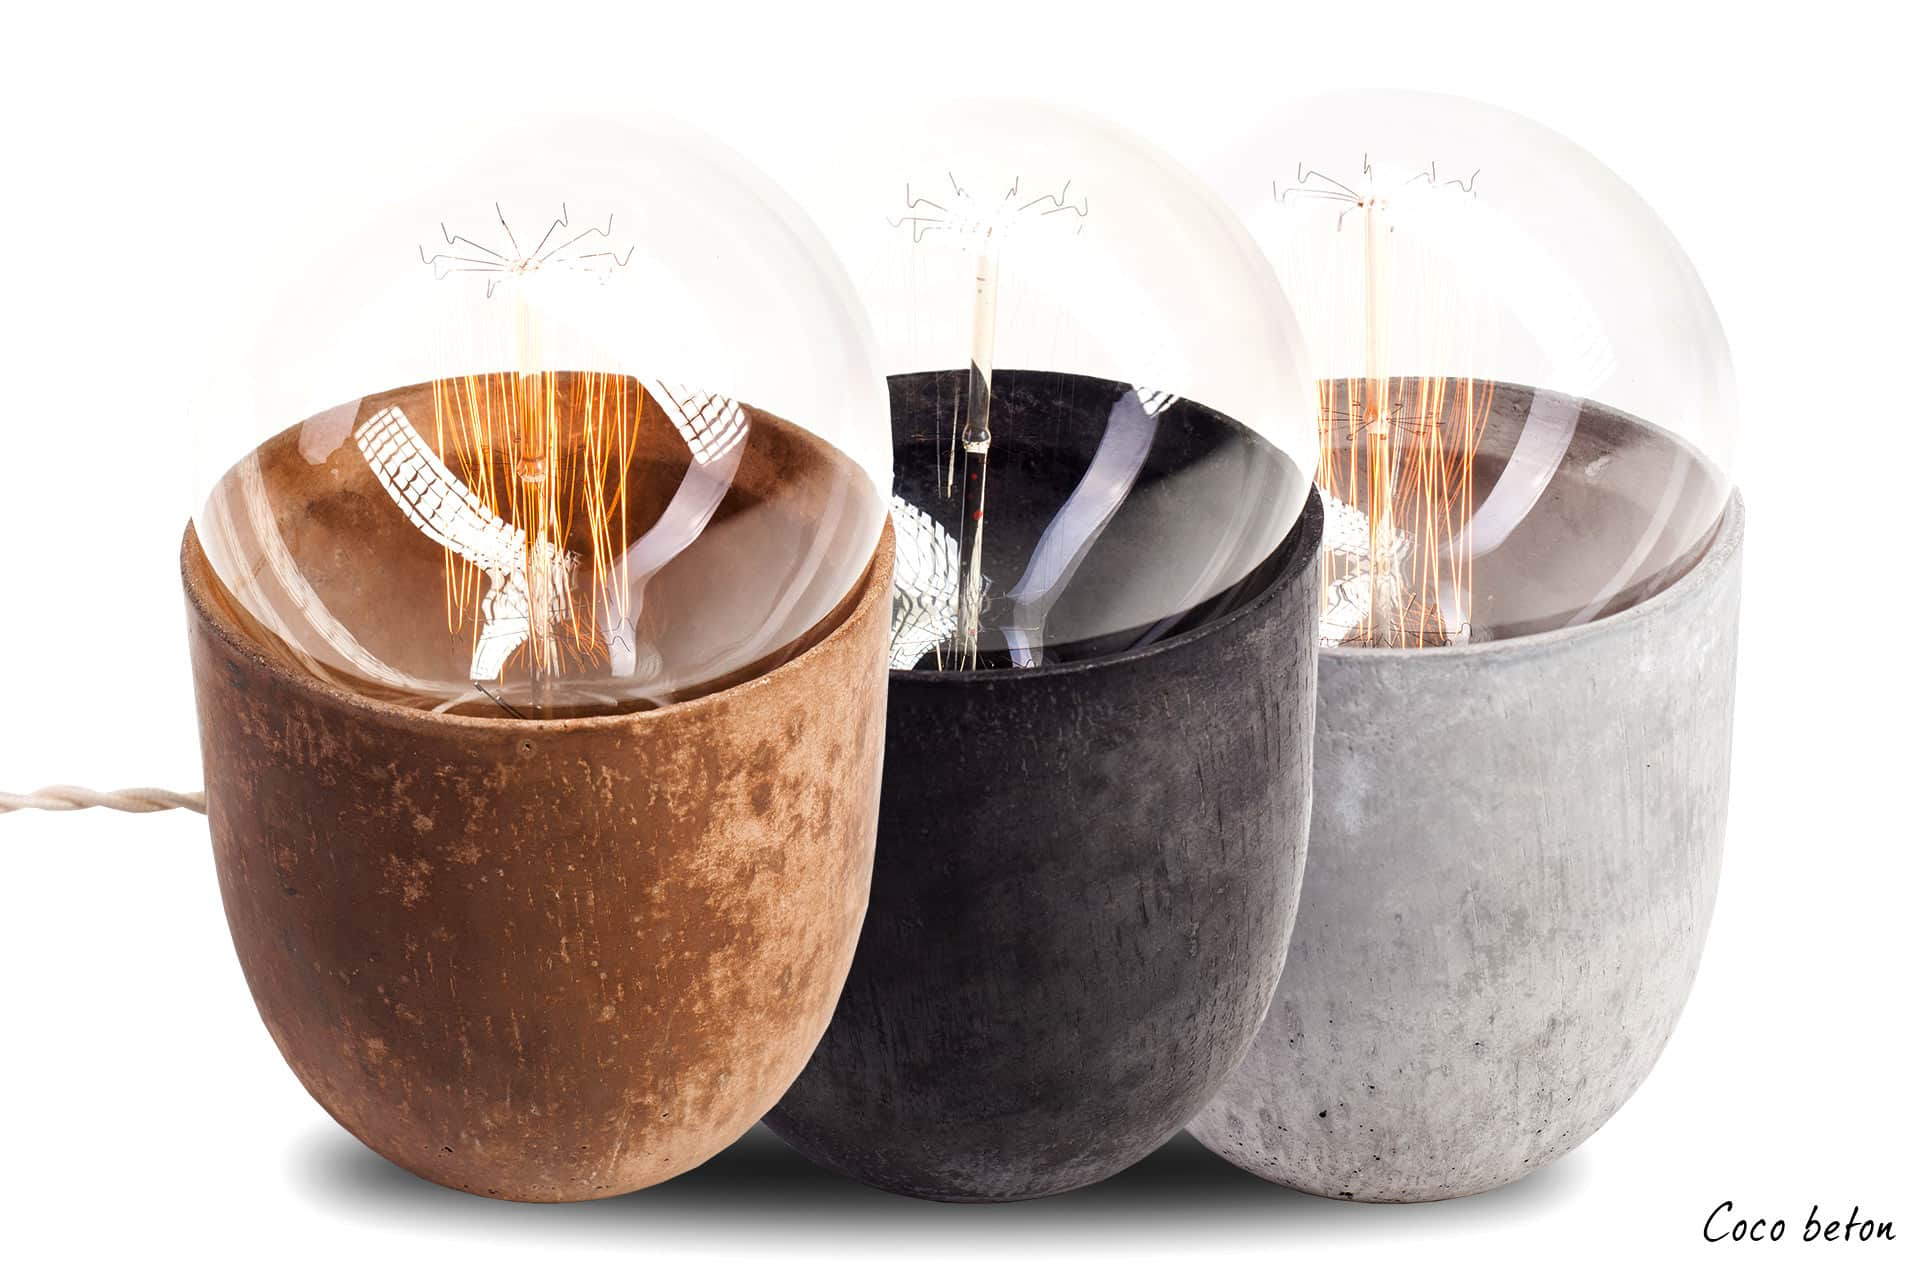 lampe de table Coco béton 3 modèles by Mickaël Koska-en vente sur PARIDEO design durable